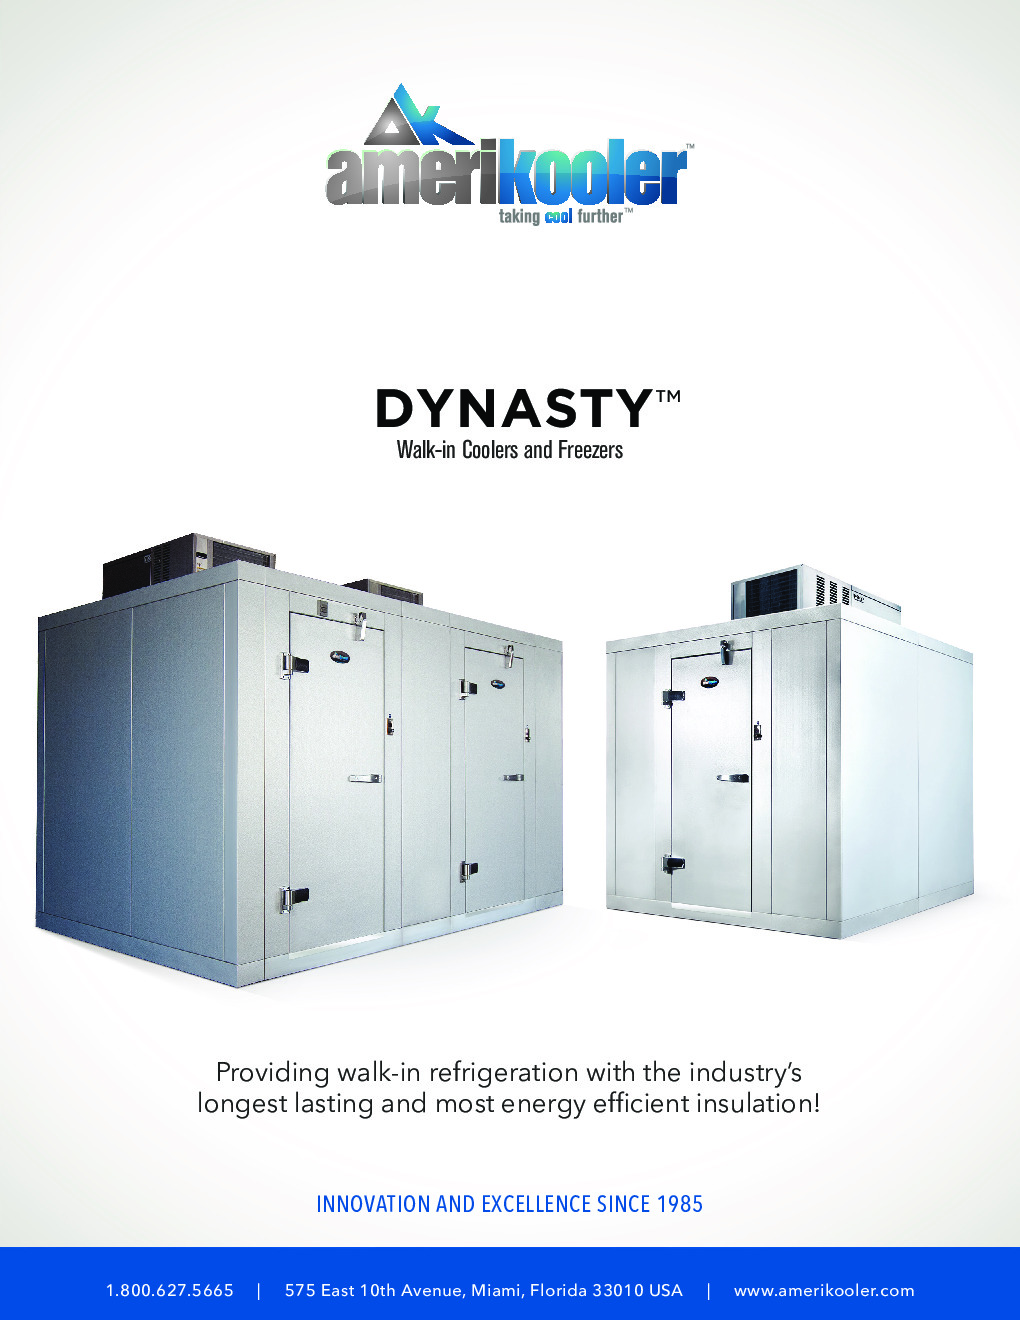 AmeriKooler DW091677F-7/9-SC 9' X 16' Walk-In Cooler, 9' L Cooler with Floor and 7' L Freezer, Self Contained